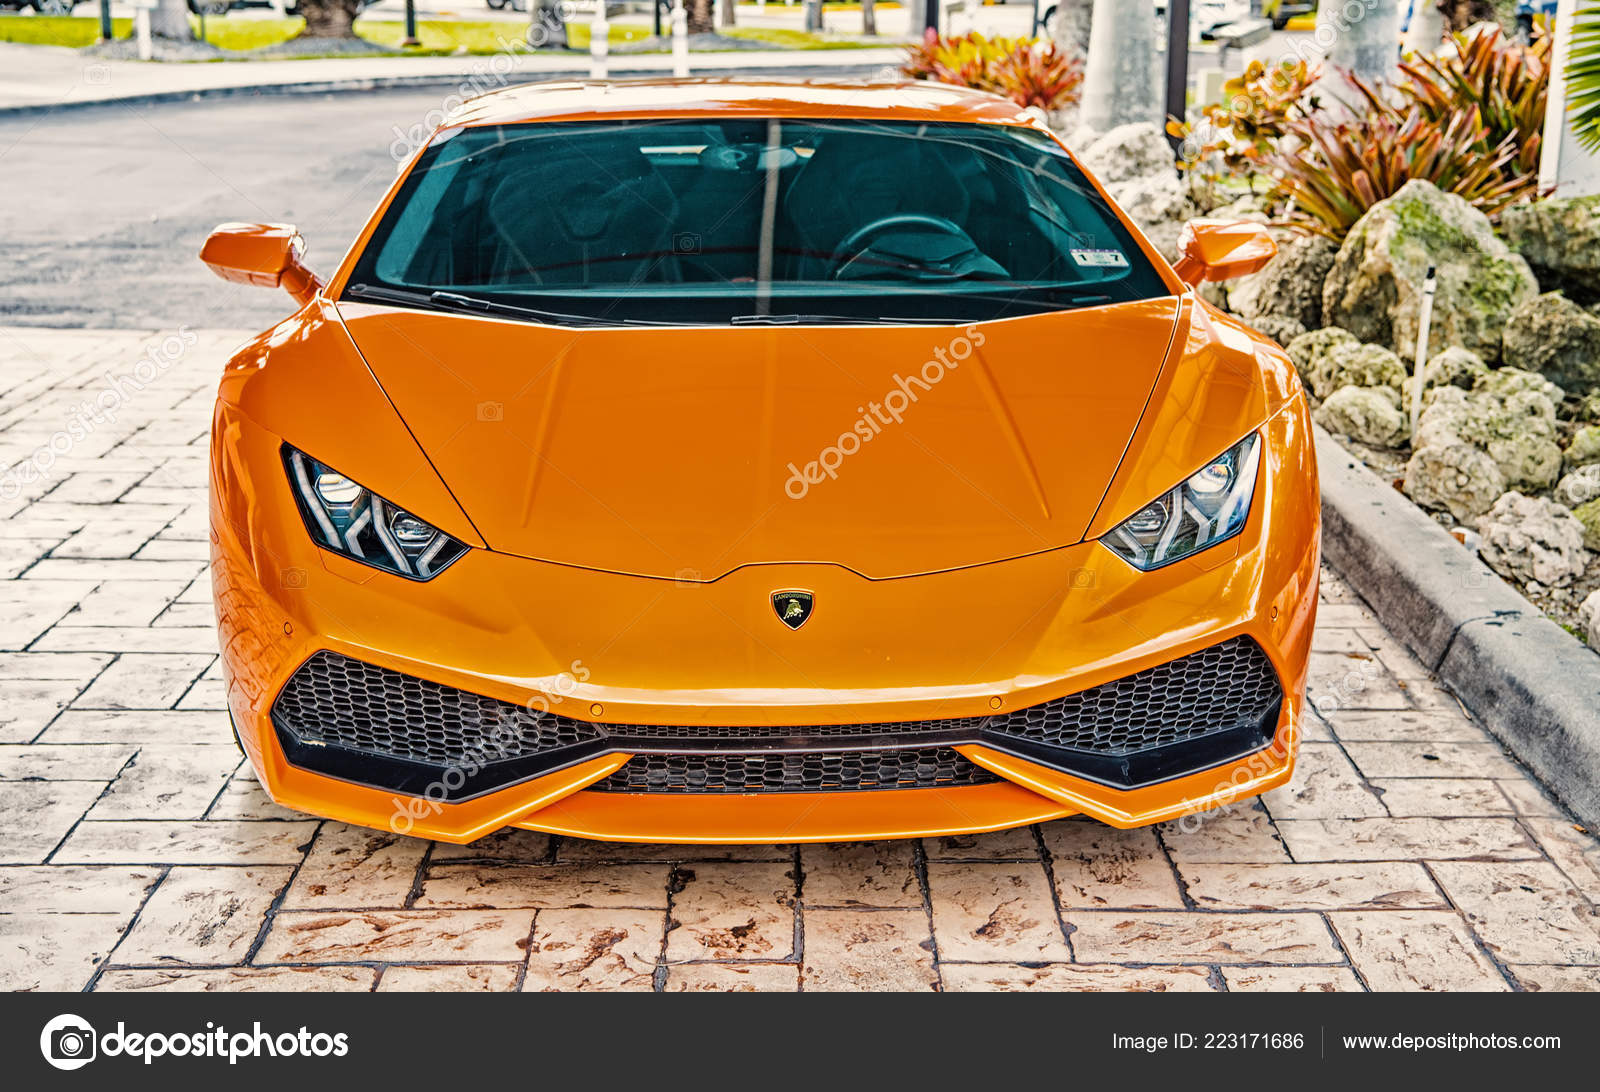 Supercar Lamborghini Aventador Orange Stock Editorial Photo